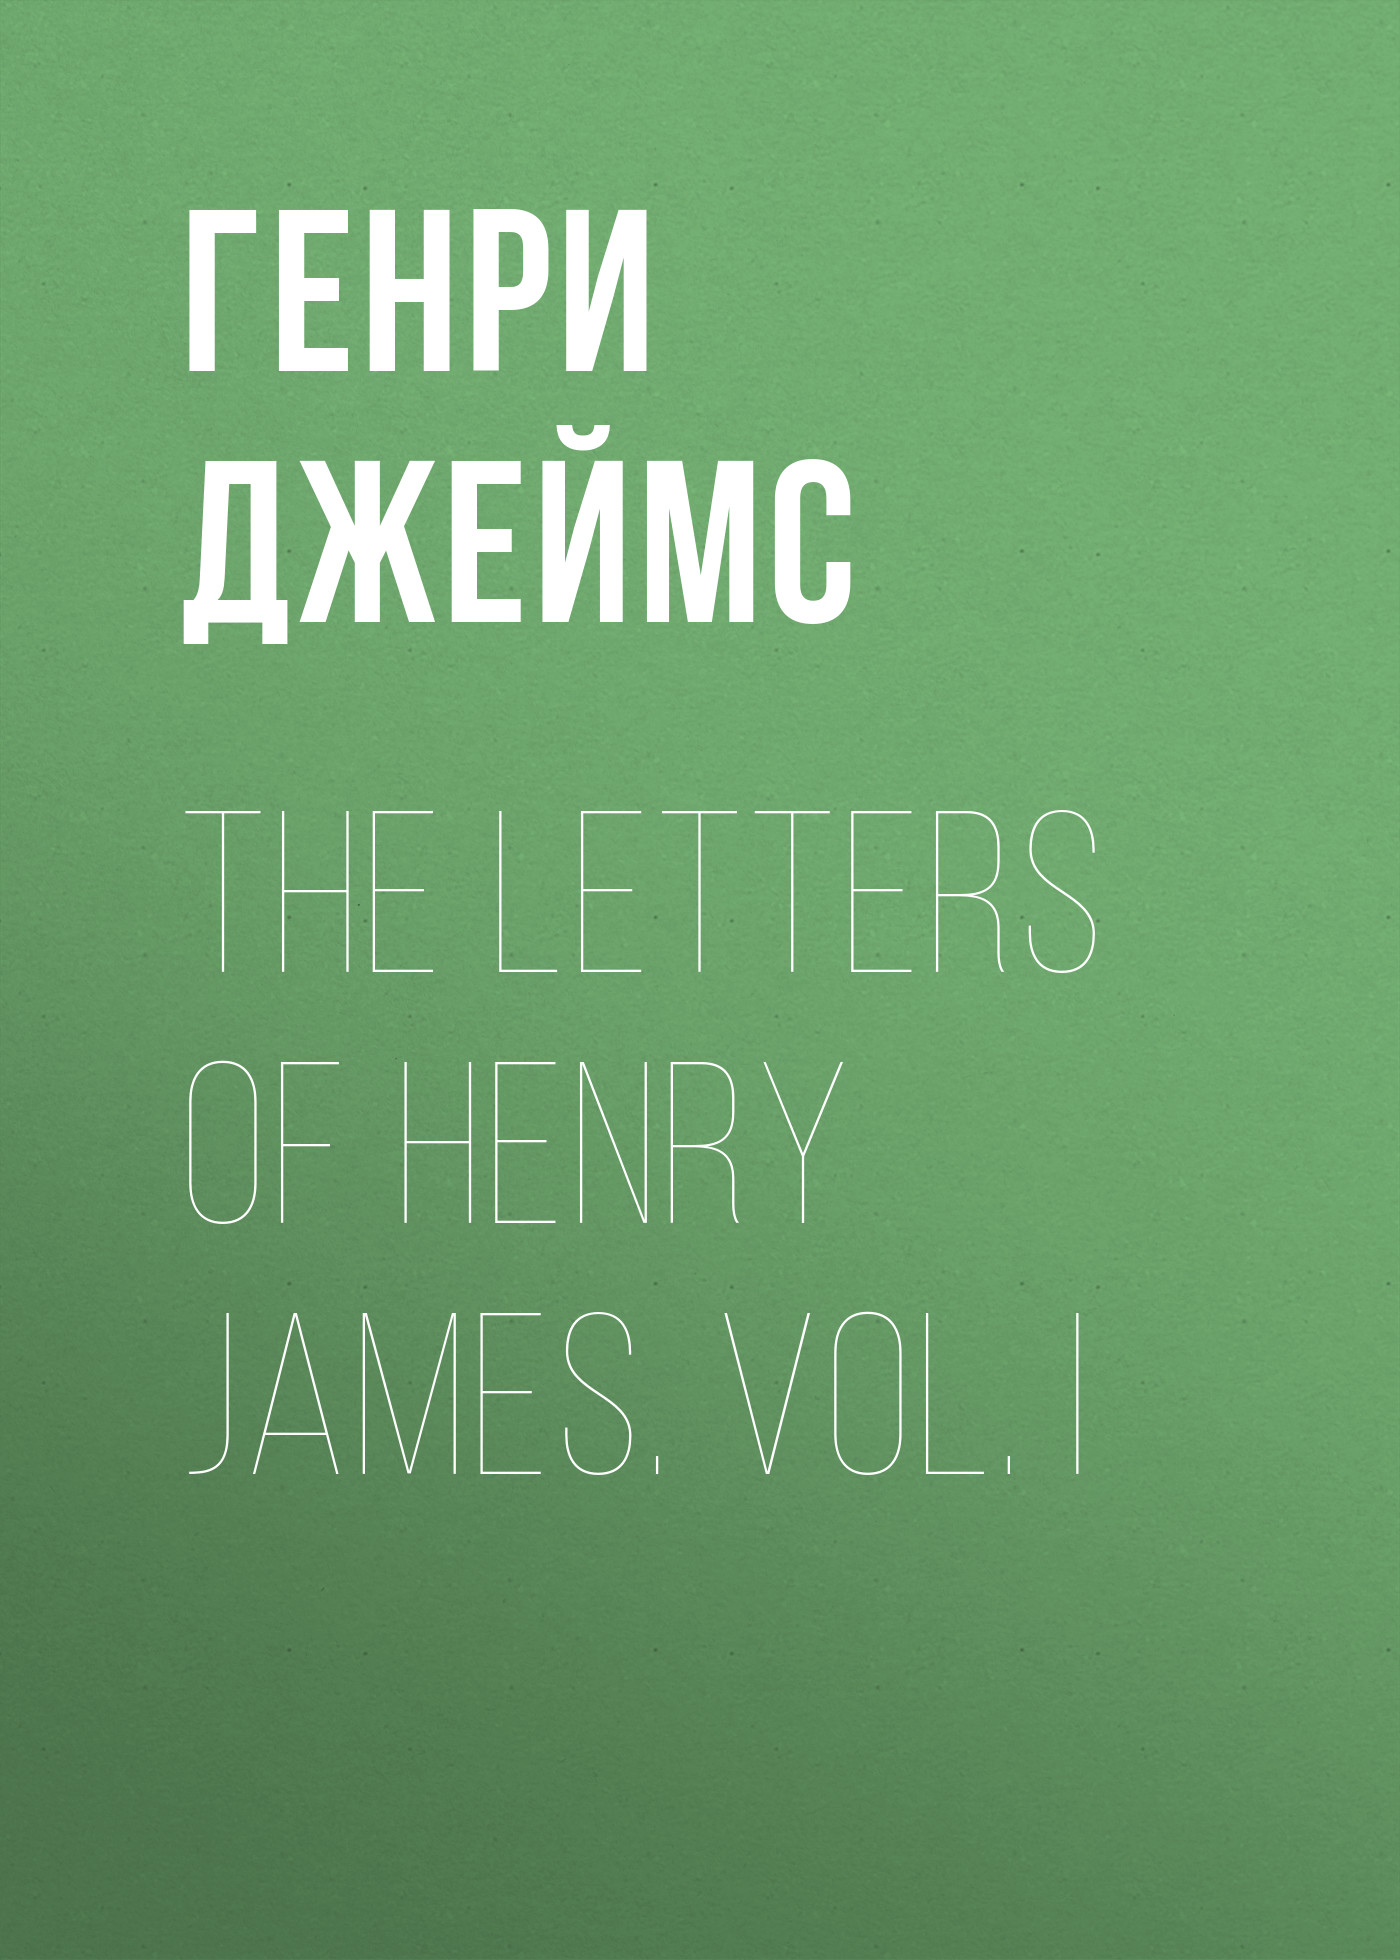 Генри Джеймс The Letters of Henry James. Vol. I the complete letters of henry james 1876 1878 volume 1